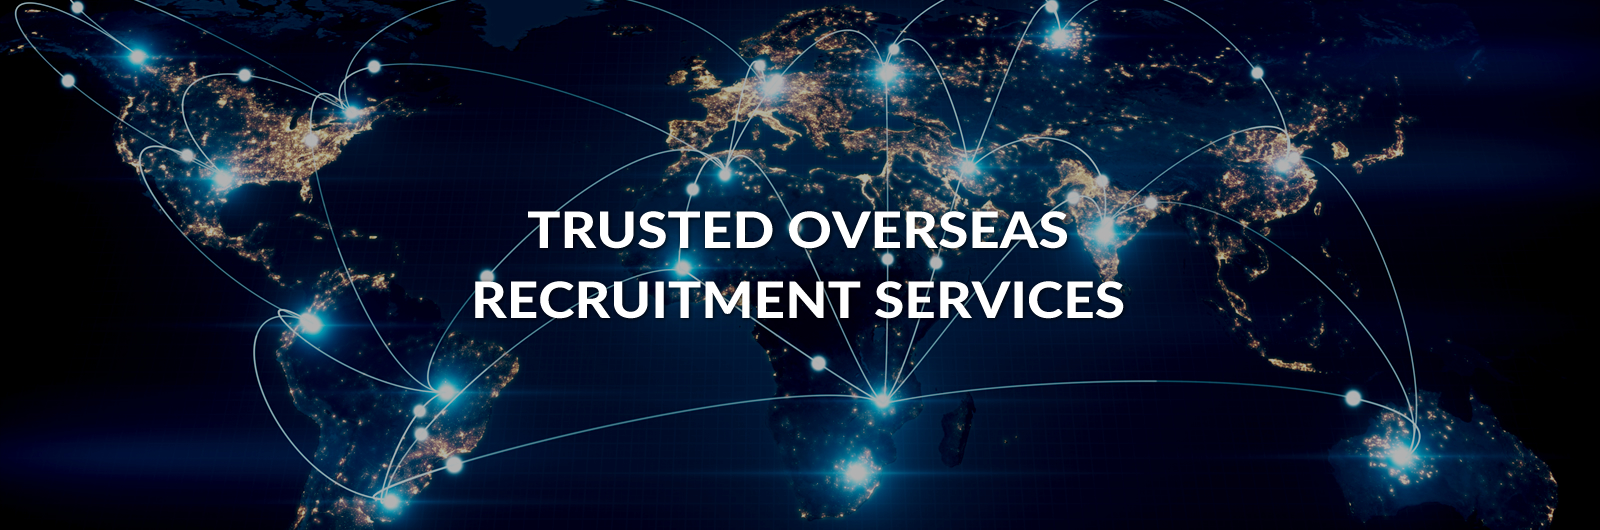 Trusted Overseas Recruitment Services